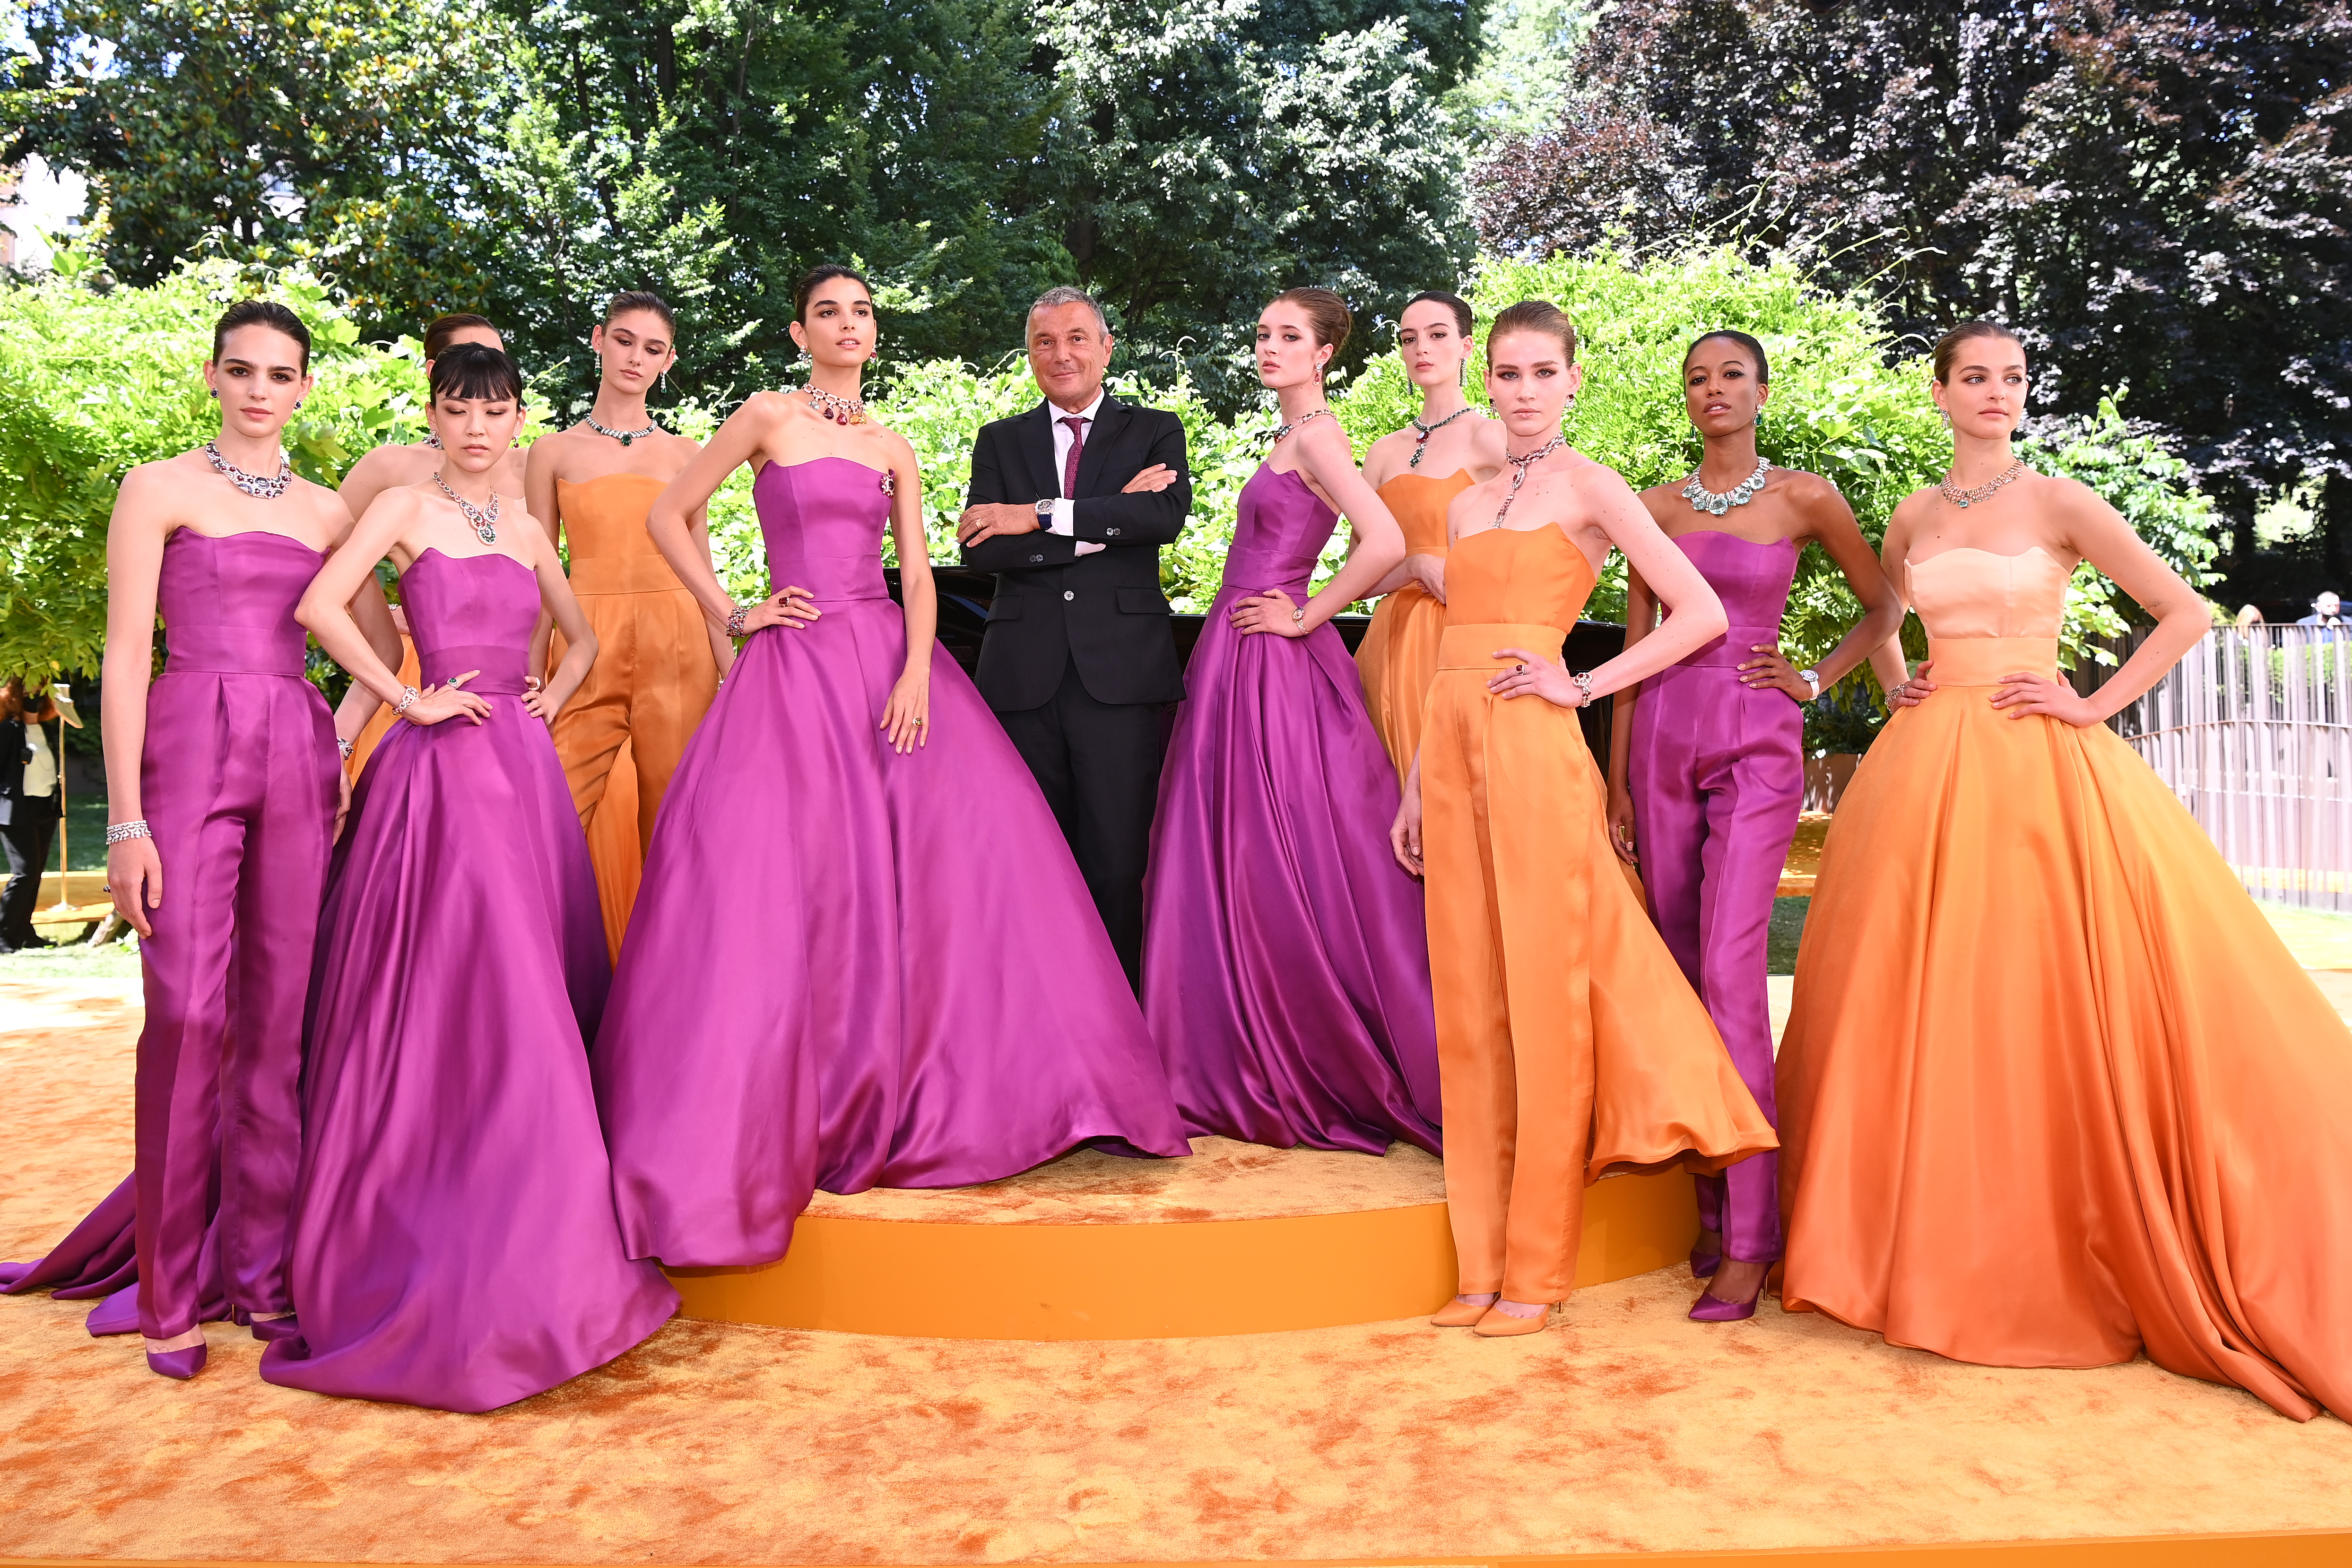 MILAN, ITALY - JUNE 04:  Jean-Christophe Babin and models are seen on the stage at the Bvlgari Press Lunch on June 04, 2021 in Milan, Italy. (Photo by Daniele Venturelli/Daniele Venturelli/Getty Images for Bvulgari )